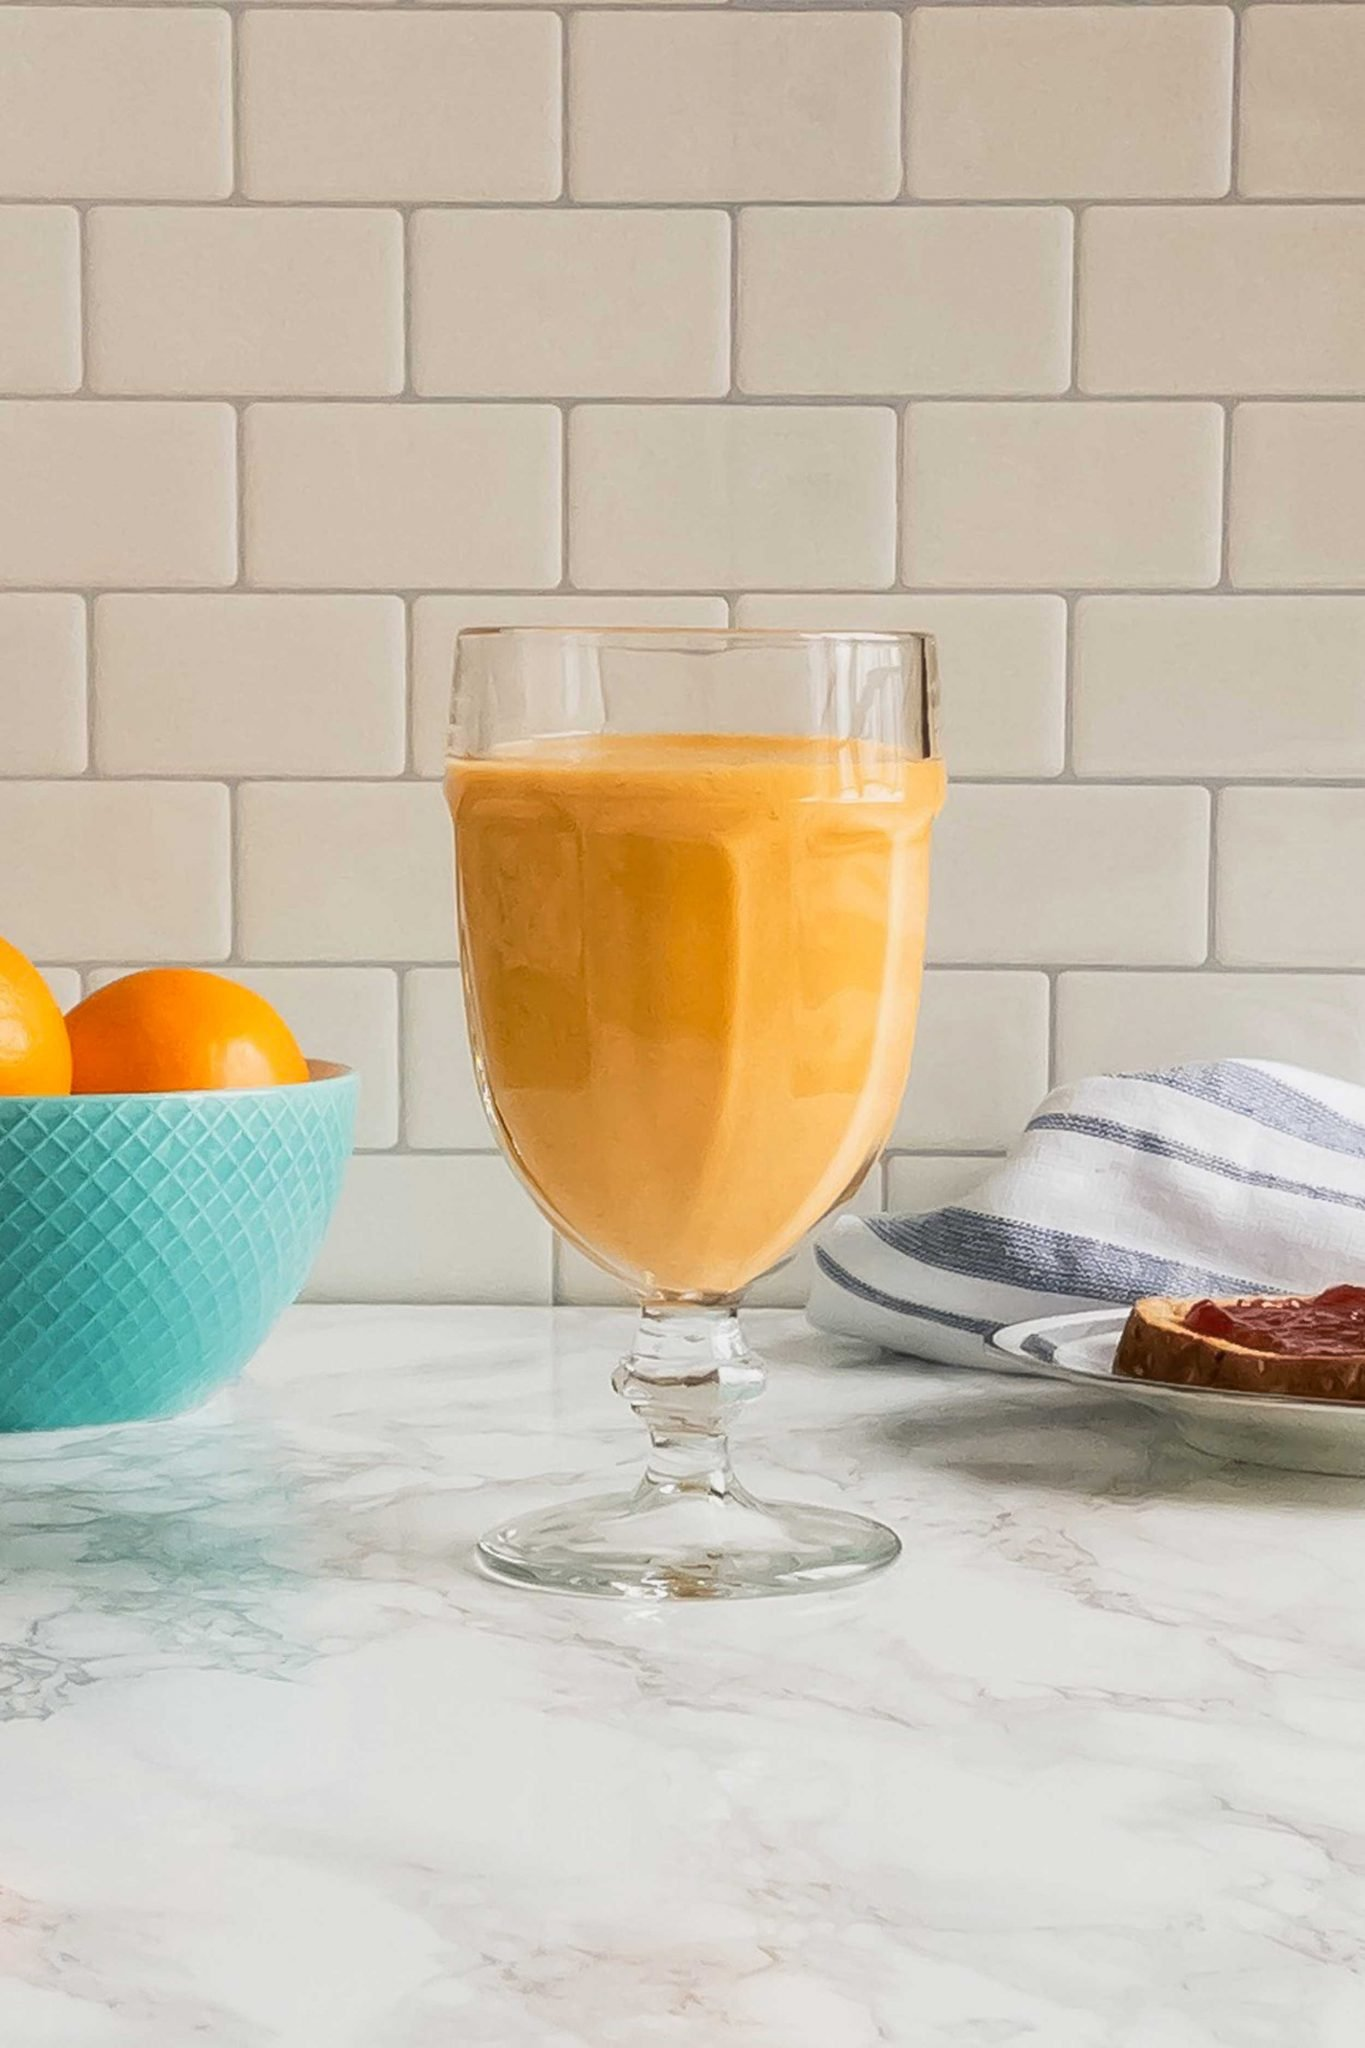 Sunshine Smoothie on a table with toast and a bowl of oranges.